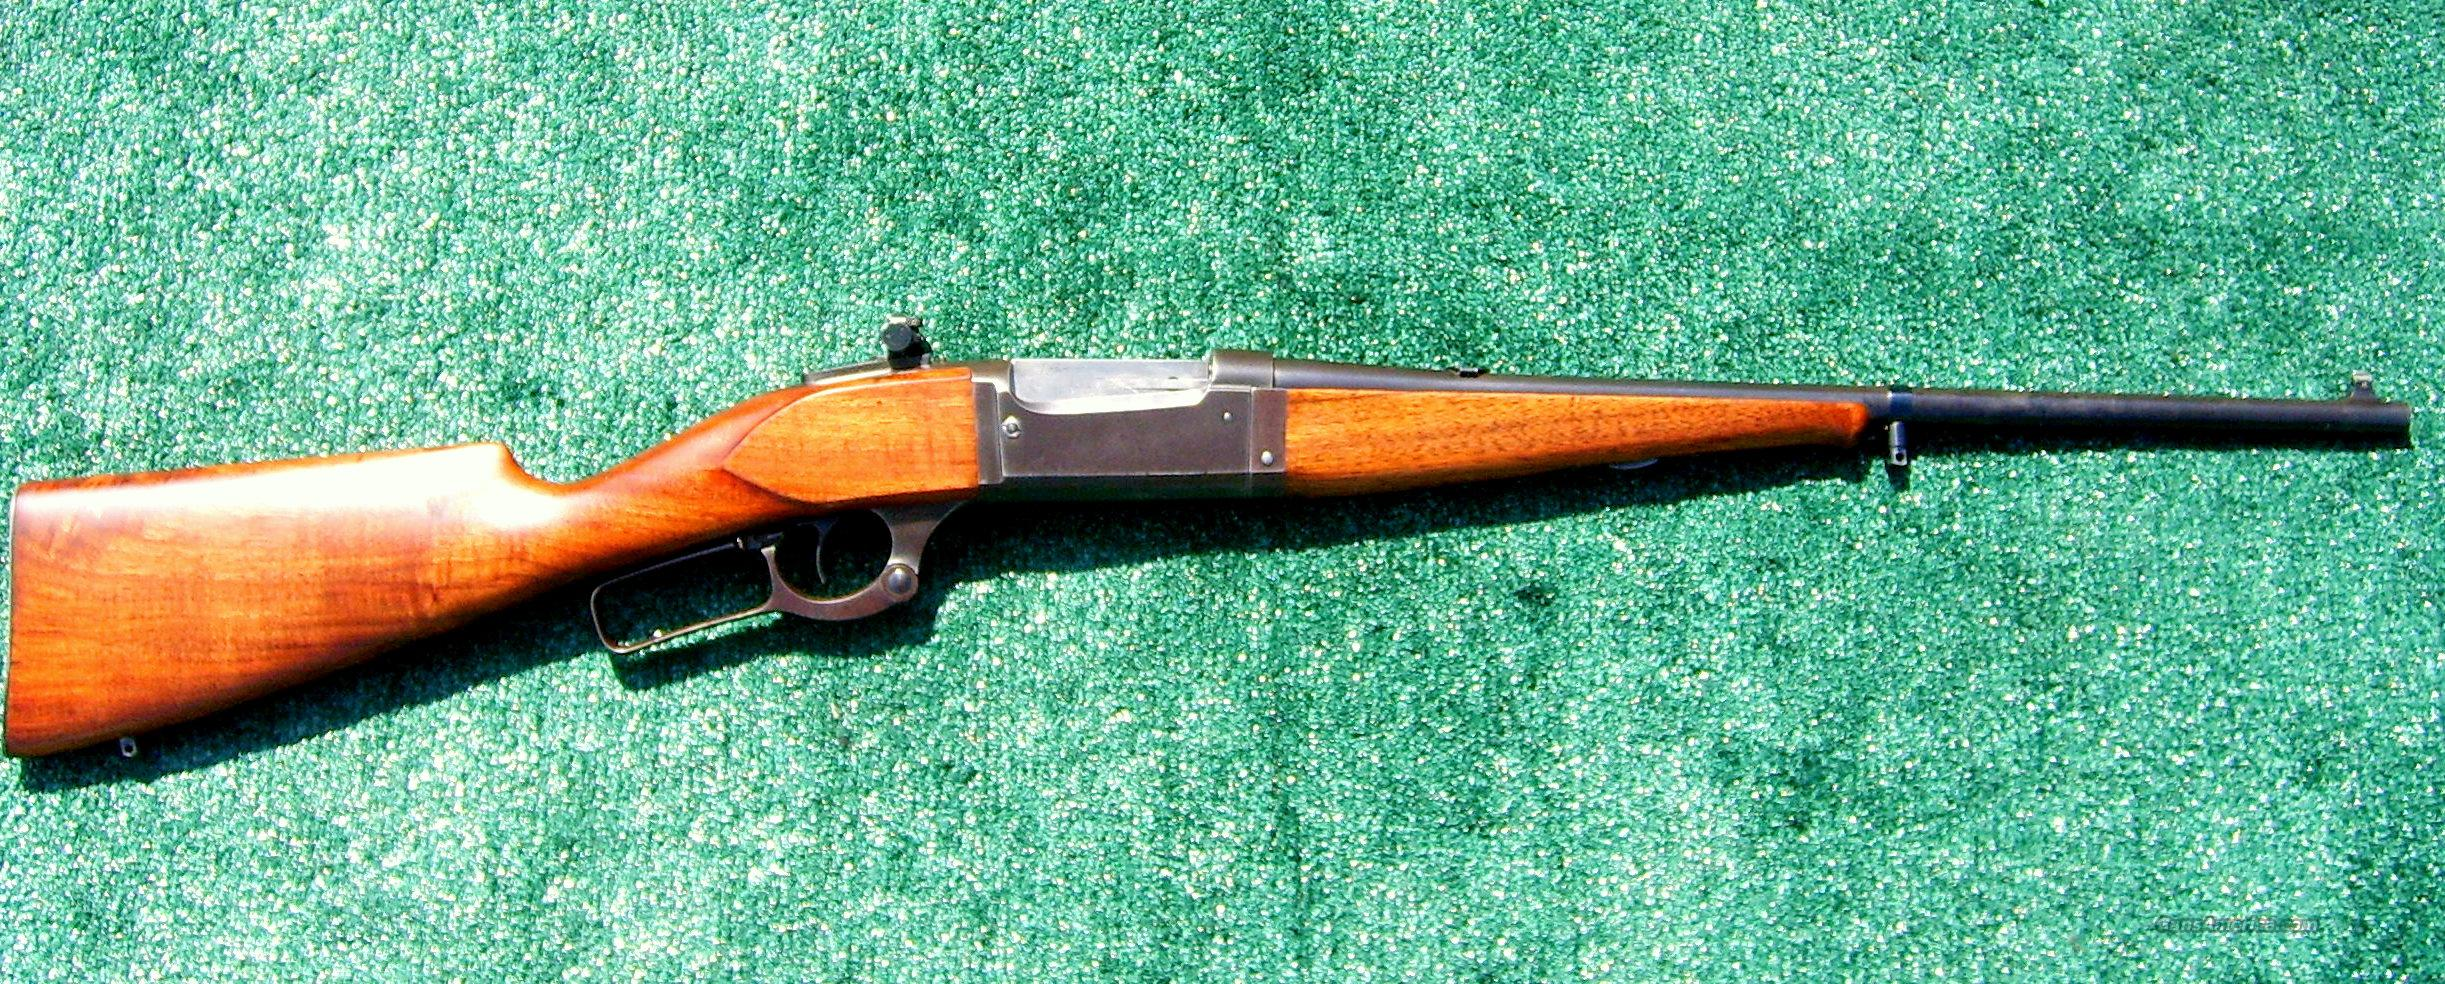 Savage Model 1899 Take Down .22 Hi Power Lever Action Rifle  Guns > Rifles > Savage Rifles > Model 95/99 Family